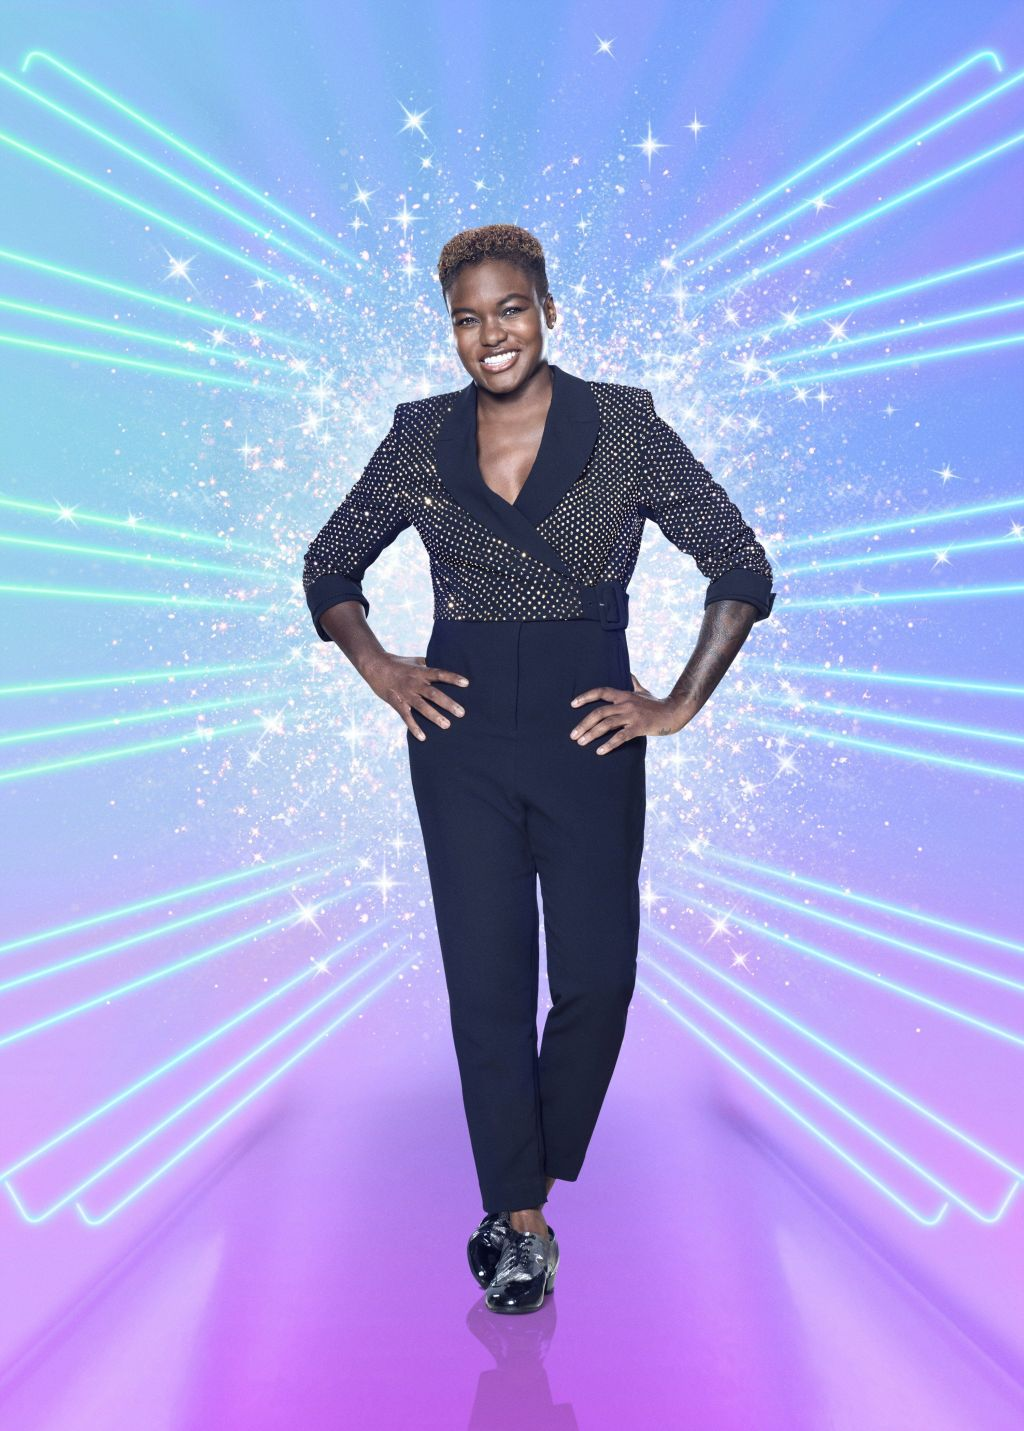 Nicola Adams On Strictly's First Same-Sex Pairing: 'I Don't See What The Big Deal Is'